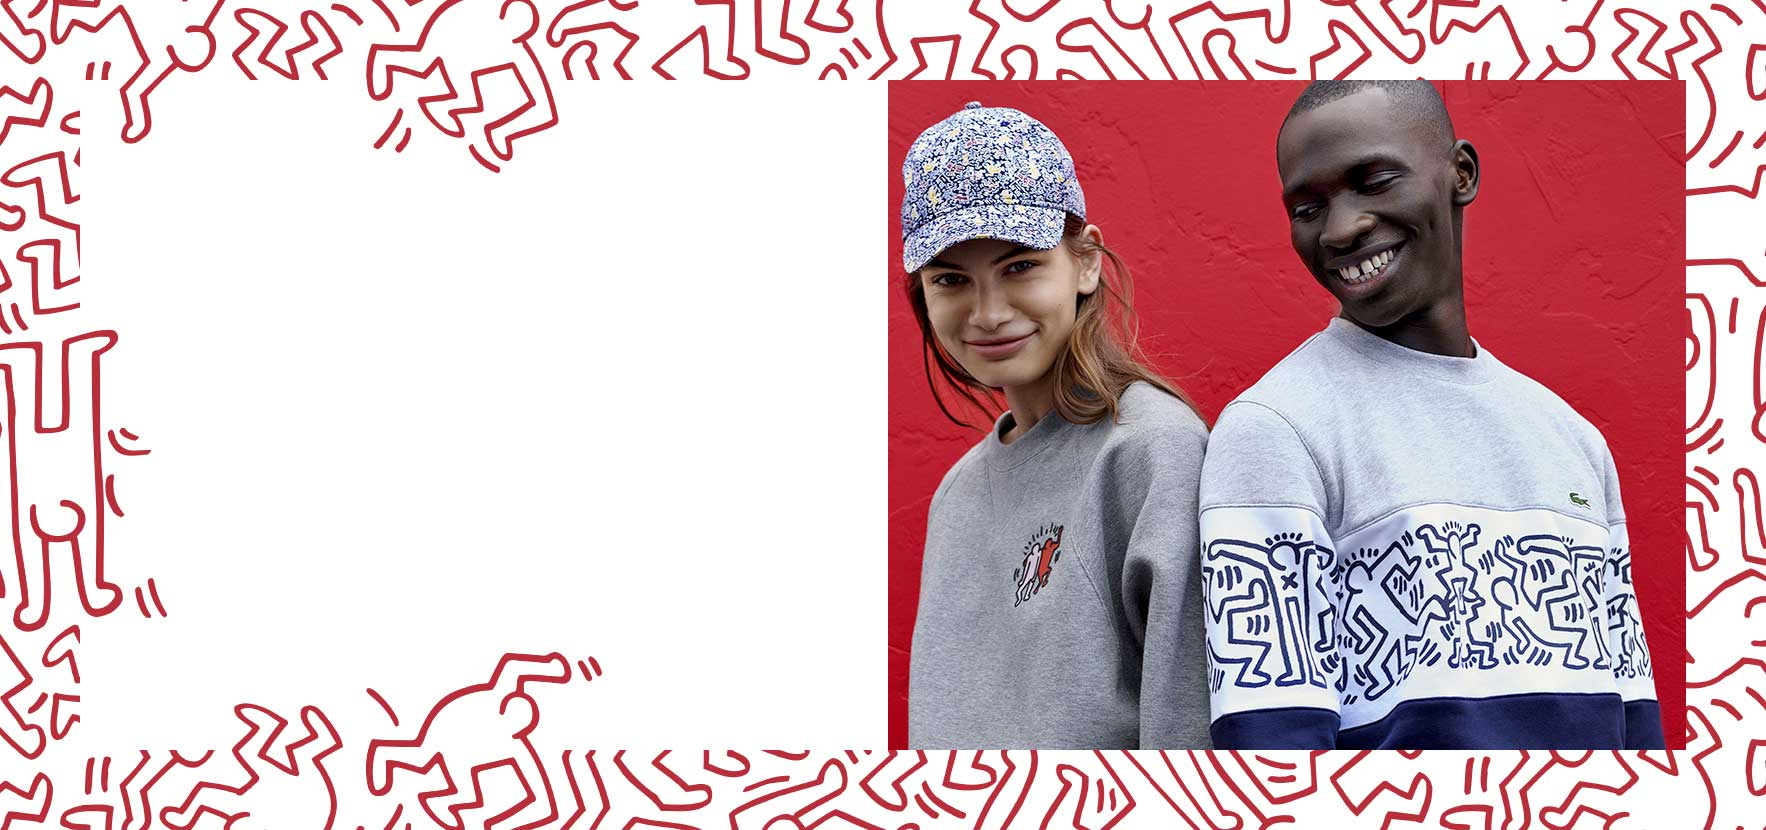 LACOSTE x KEITH HARING